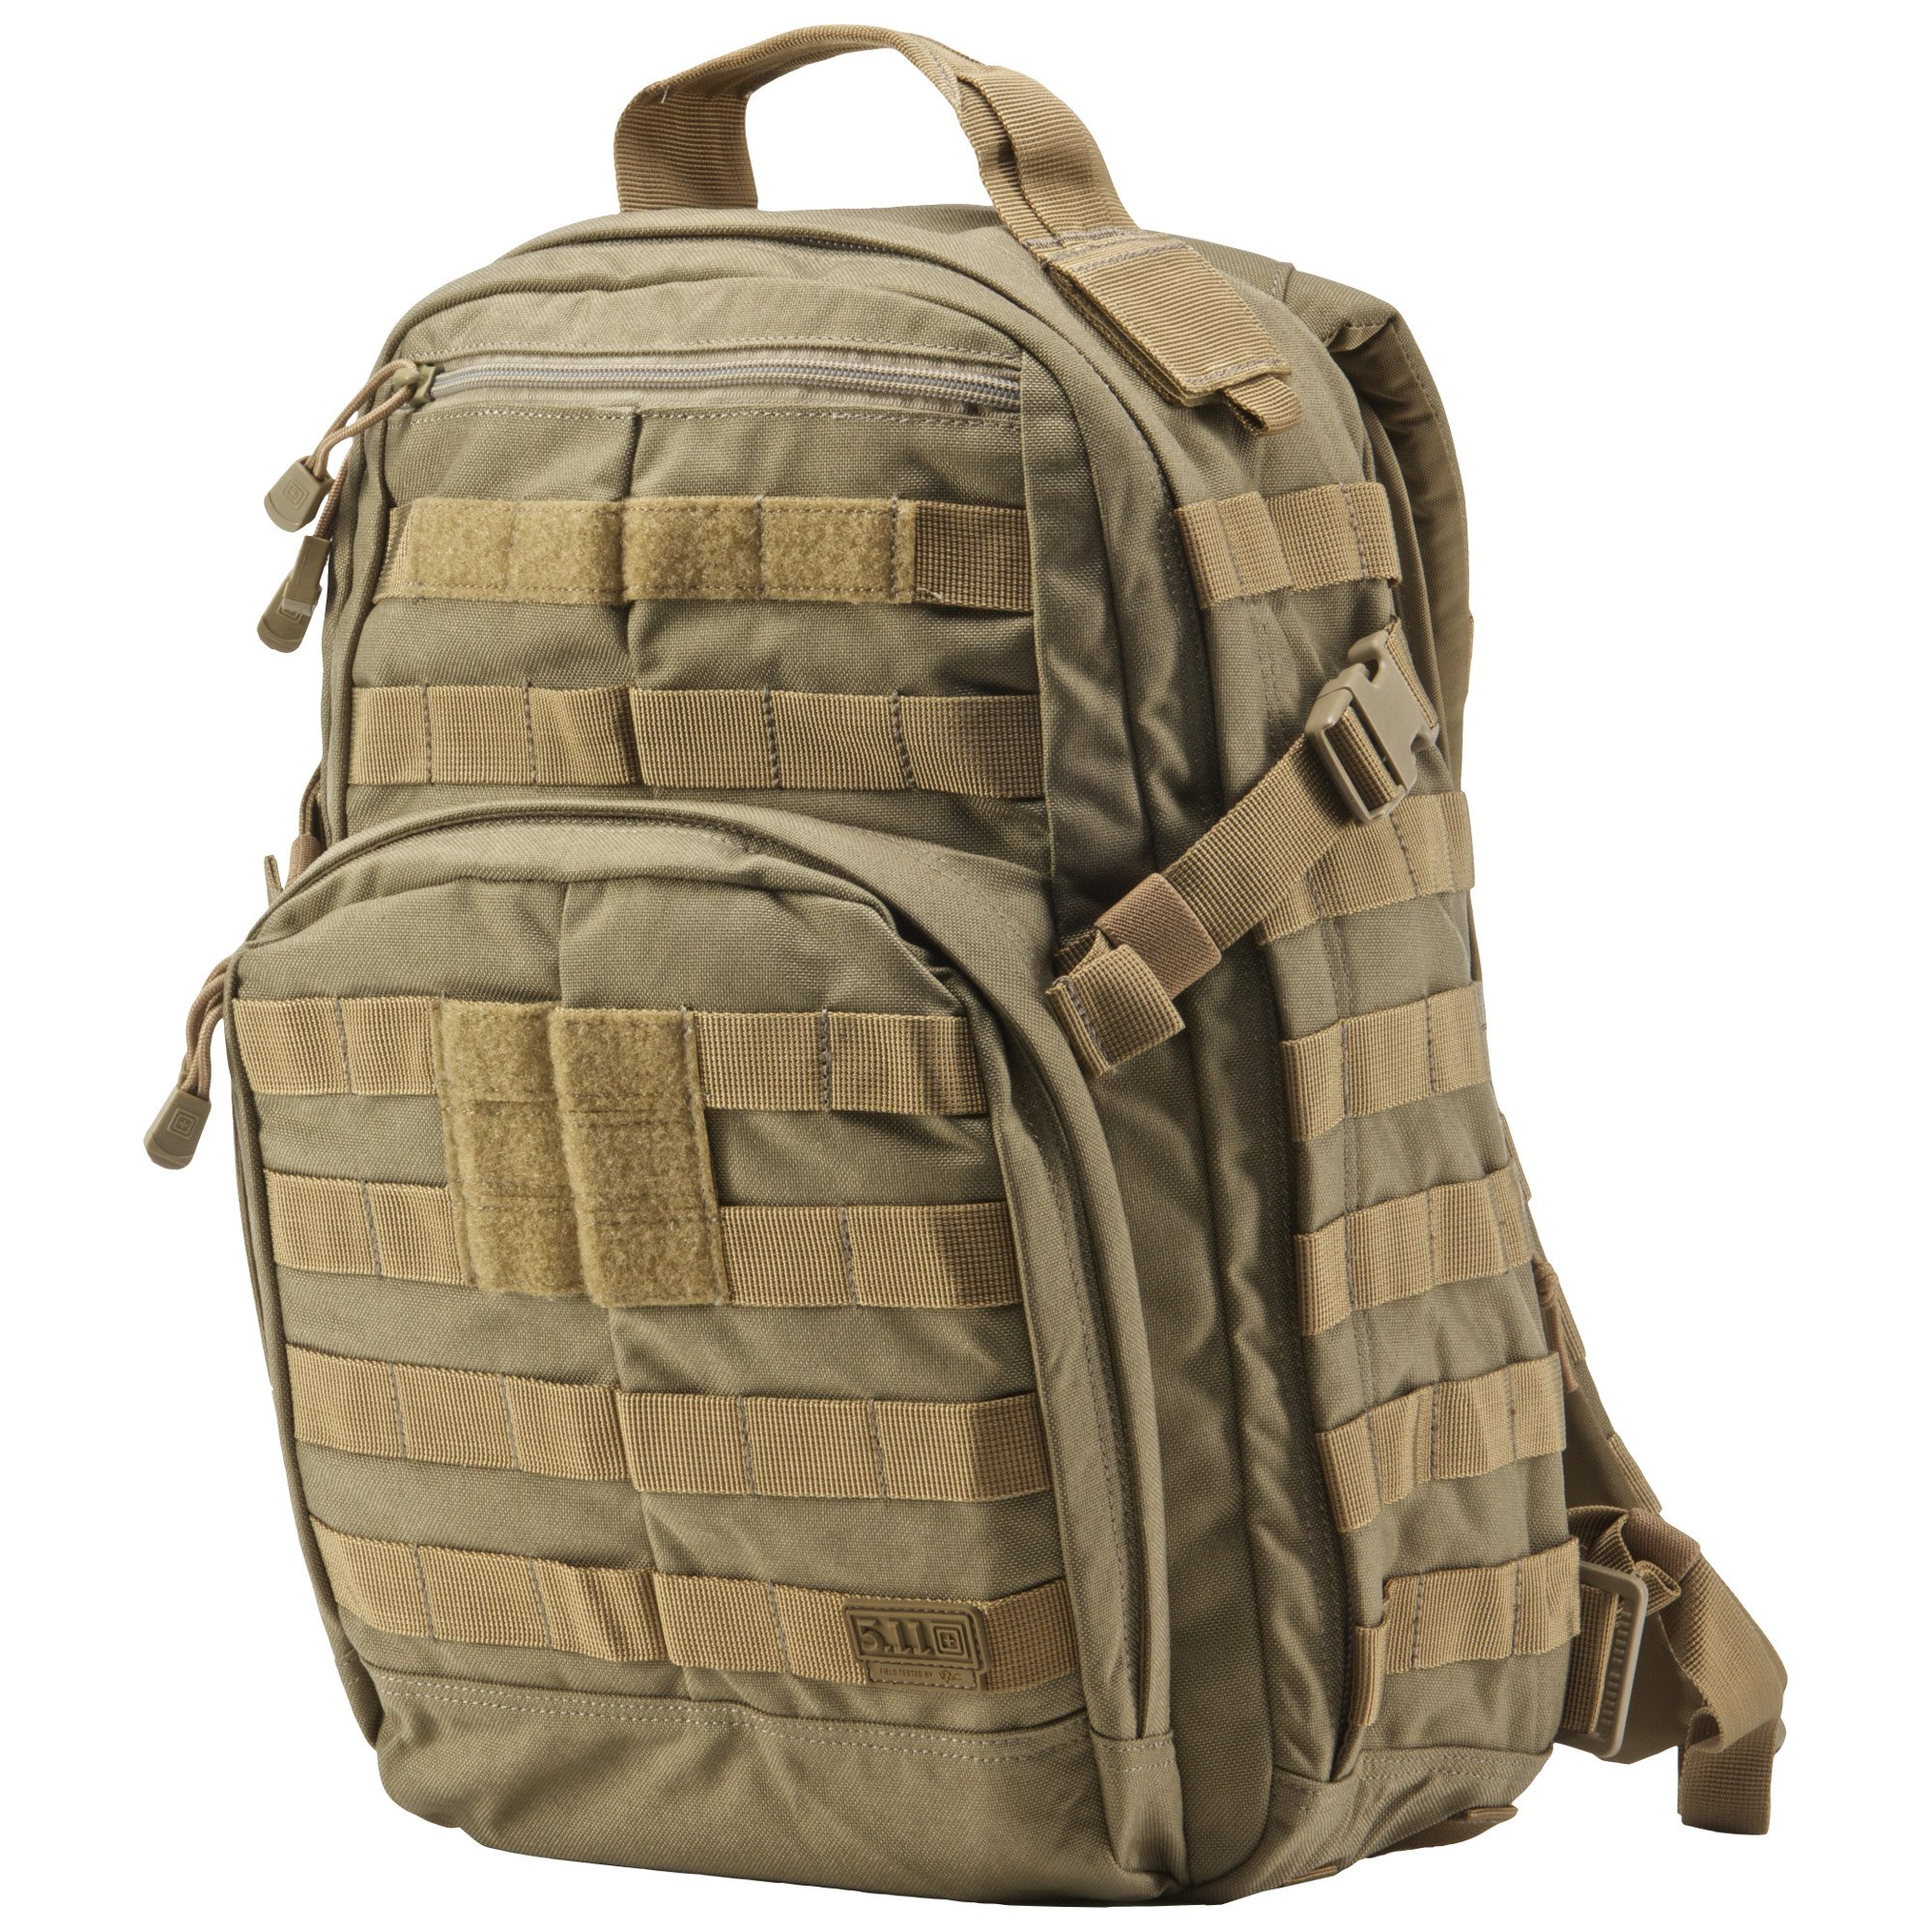 5.11 RUSH12 Tactical Military Assault Molle Backpack, Bug Out Rucksack Bag, Small, Style 56892, Sandstone by 5.11 (Image #5)